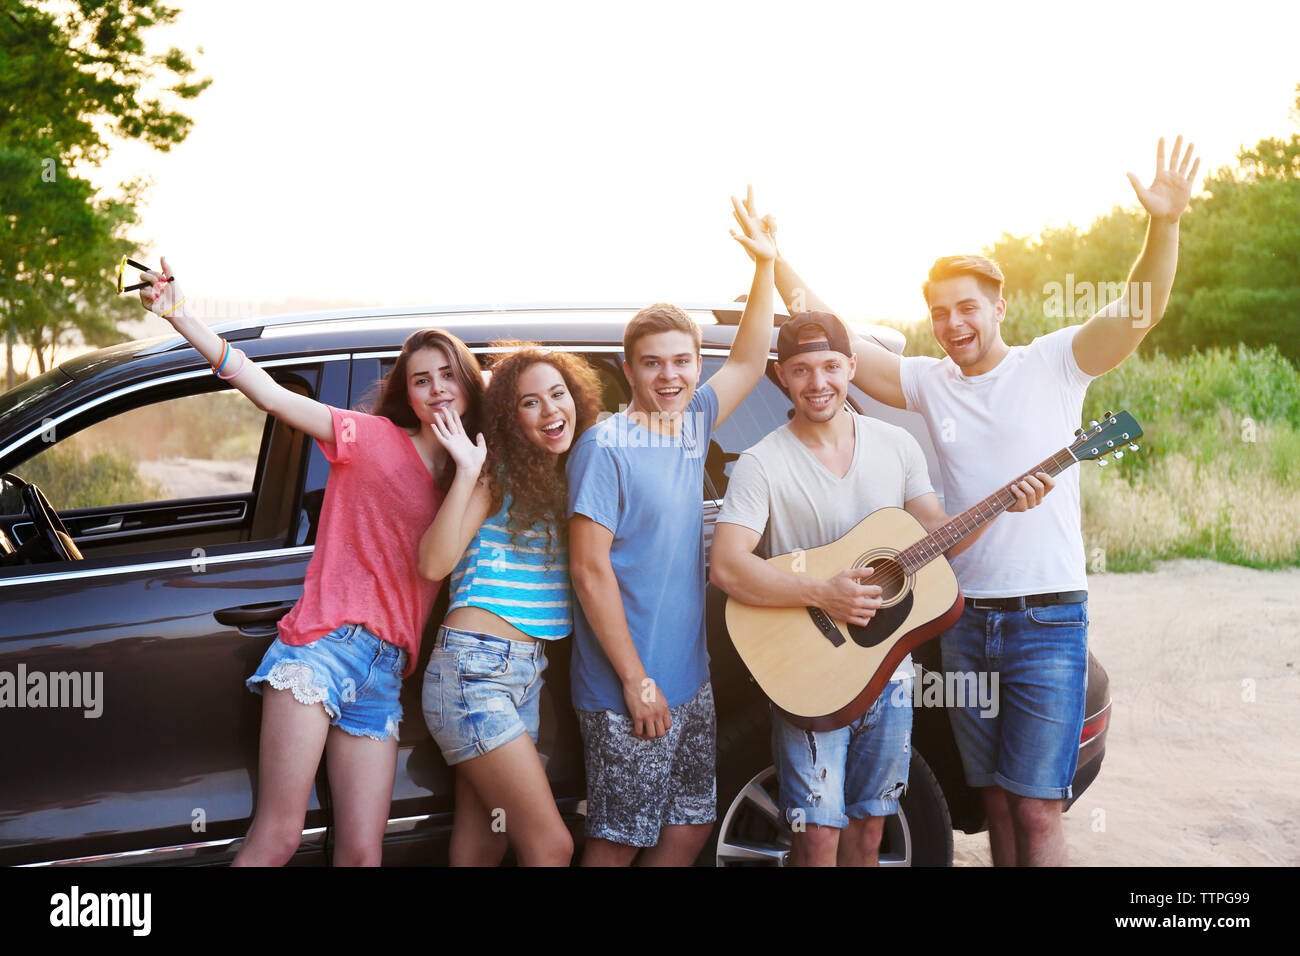 Cheerful friends with guitar near car, outdoors - Stock Image